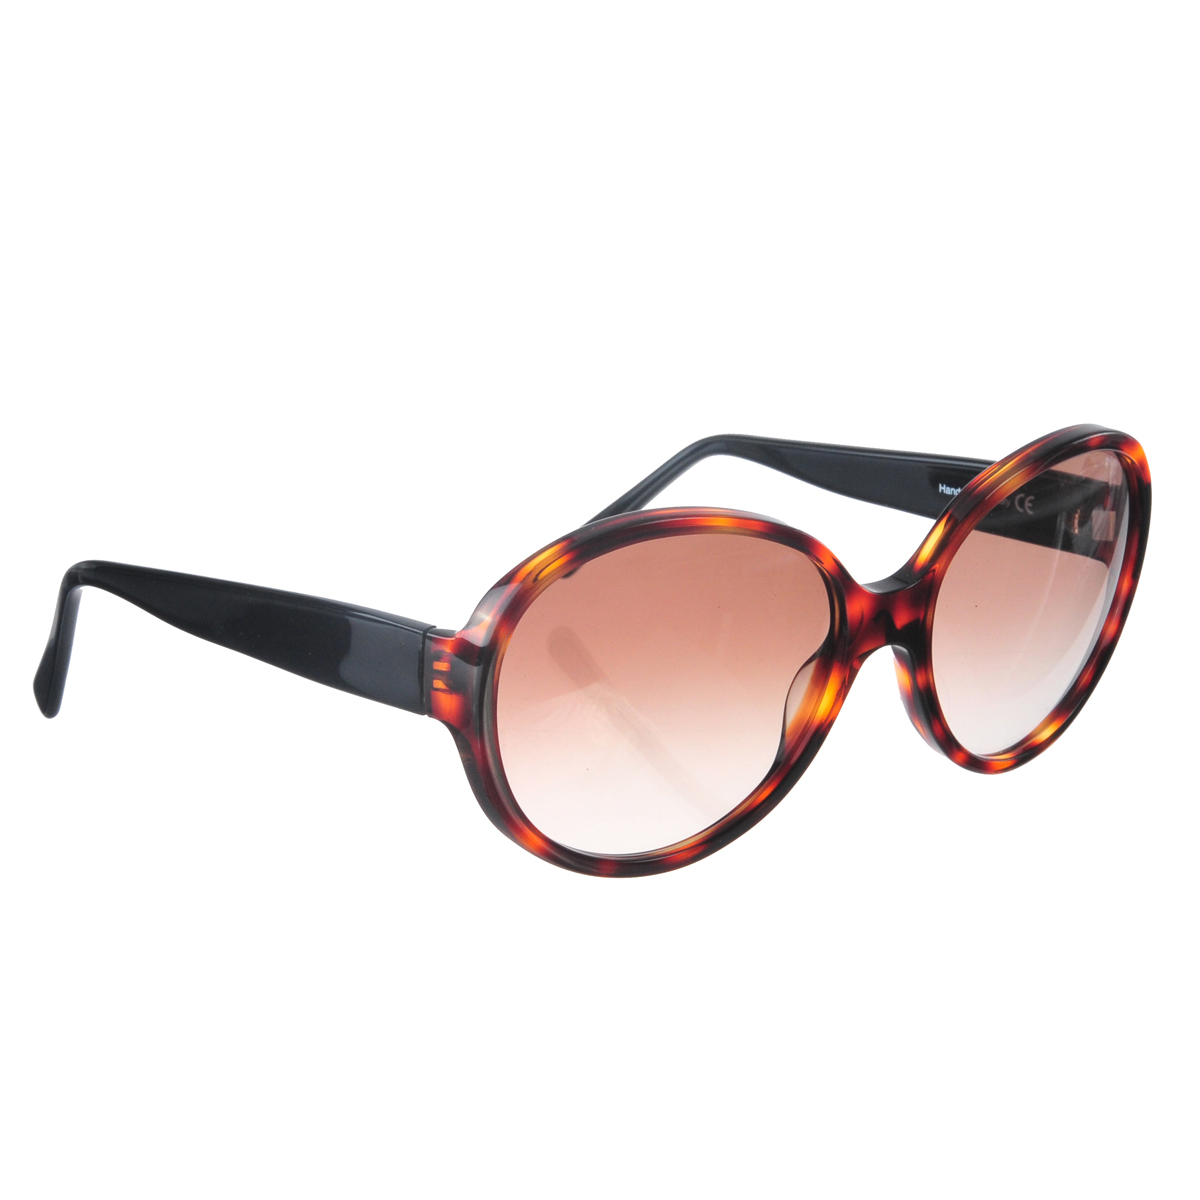 [ACCESSORIES / SUNGLASSES ] MODEL1 (RED / MADE IN ITALY)